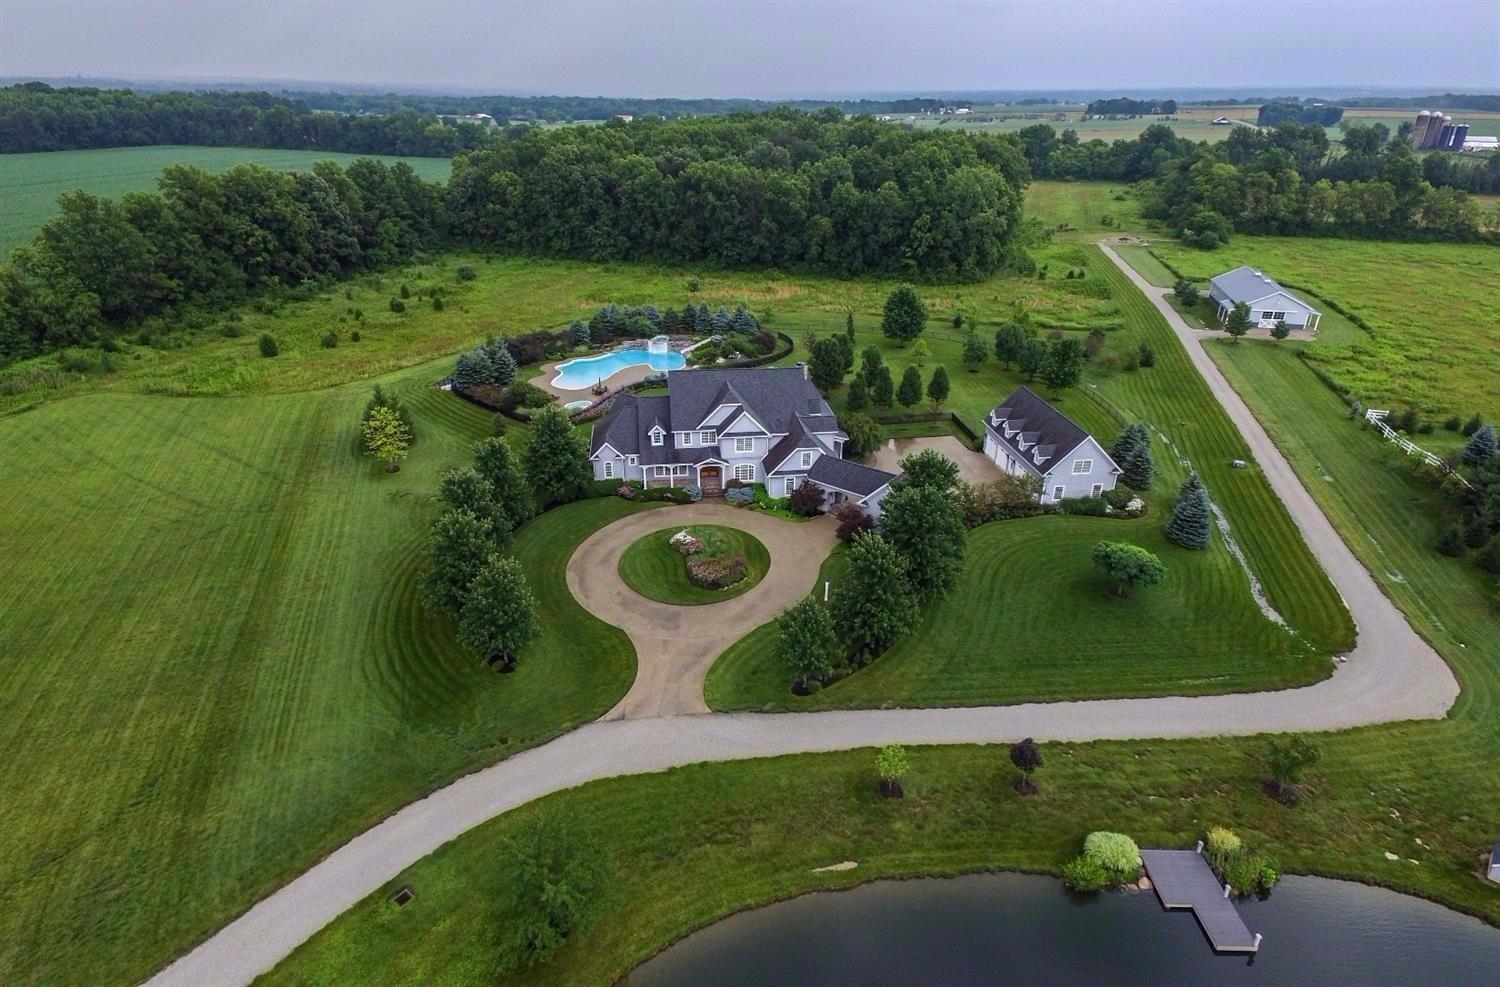 So much more than a home, this is a lifestyle! One-of-a-kind rural estate includes a stocked lake, resort-like pool, a 3-stall horse barn with loft and tack room, and 10,000 sqft of comfortable and easy living space. Beautiful architectural details and thoughtful design will impress you; the never-ending list of amenities will make you want to stay